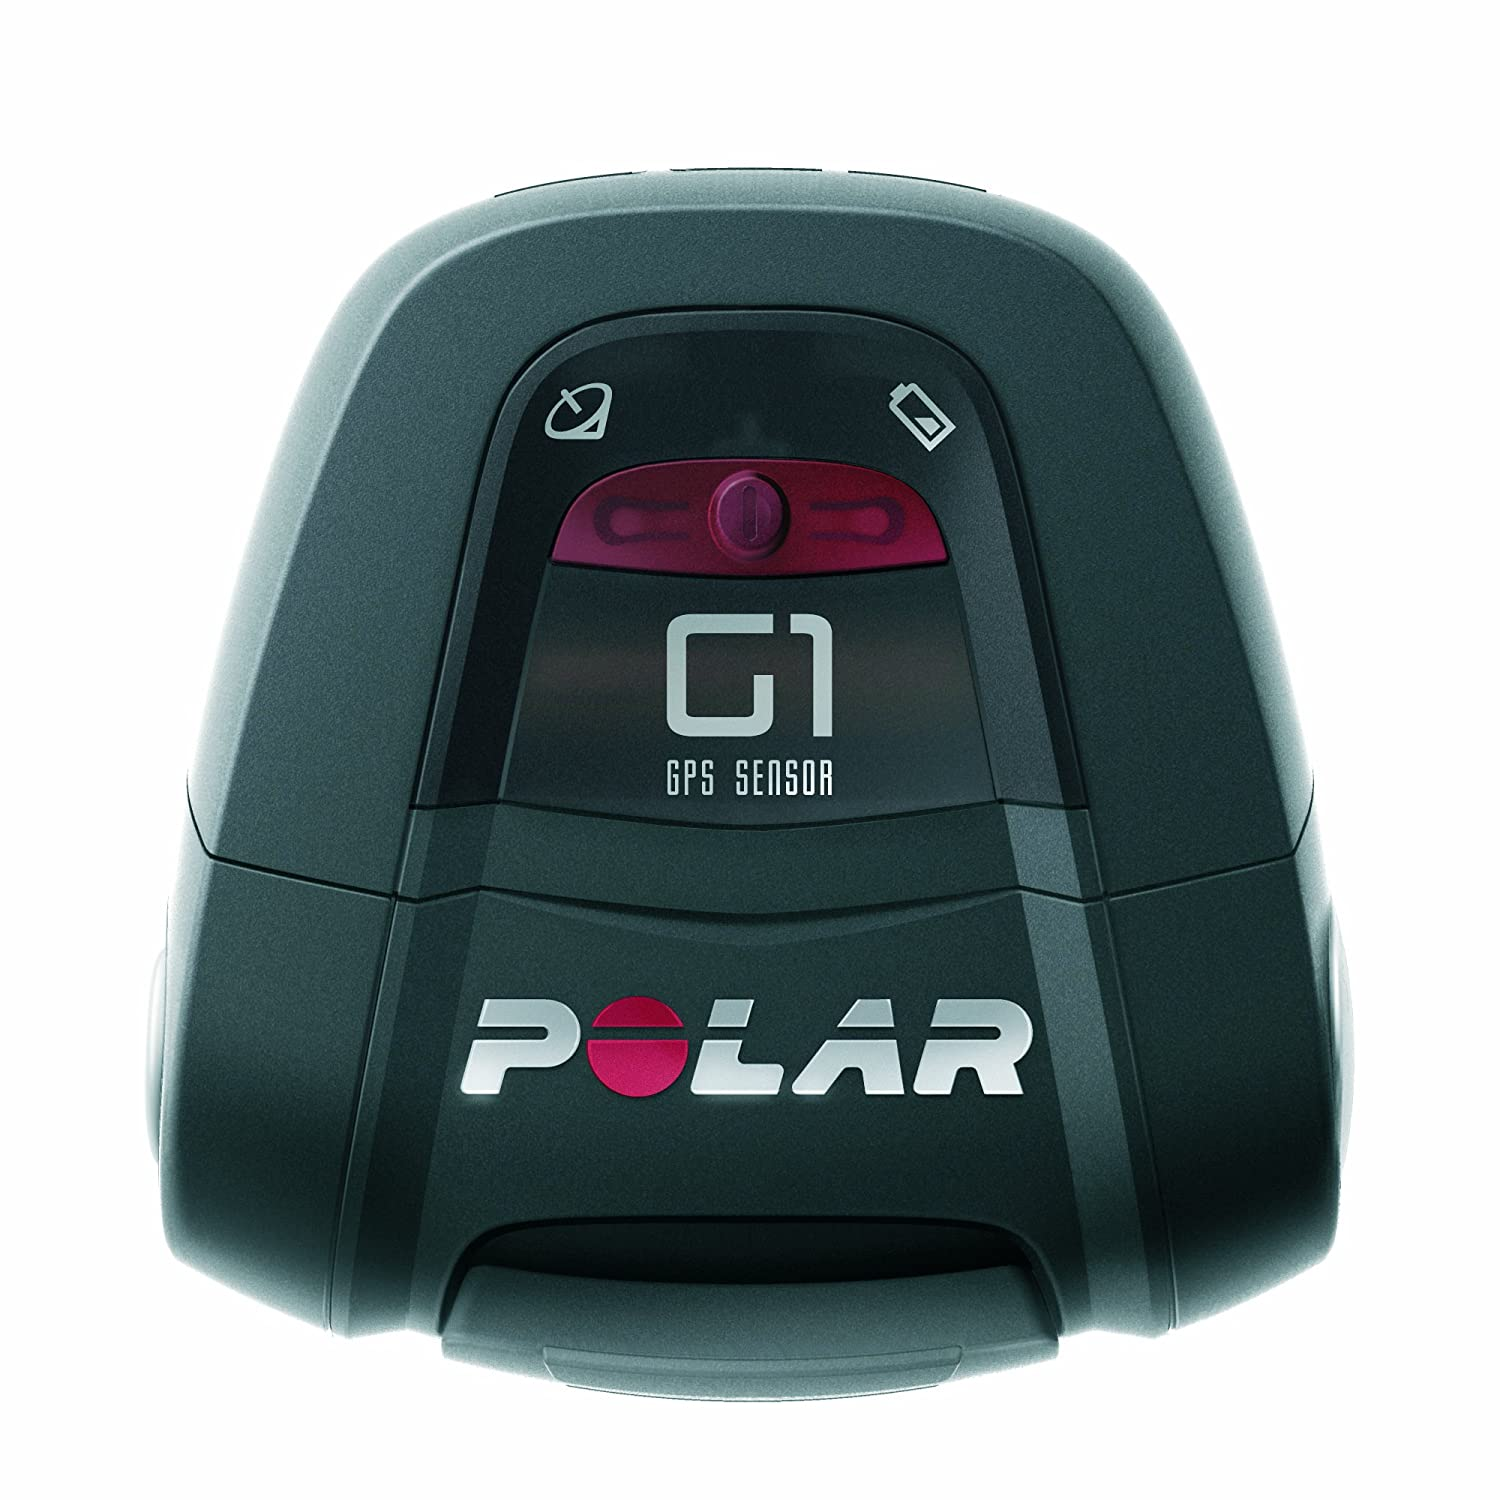 Amazon.com: Polar G3 GPS Sensor Set: Sports & Outdoors